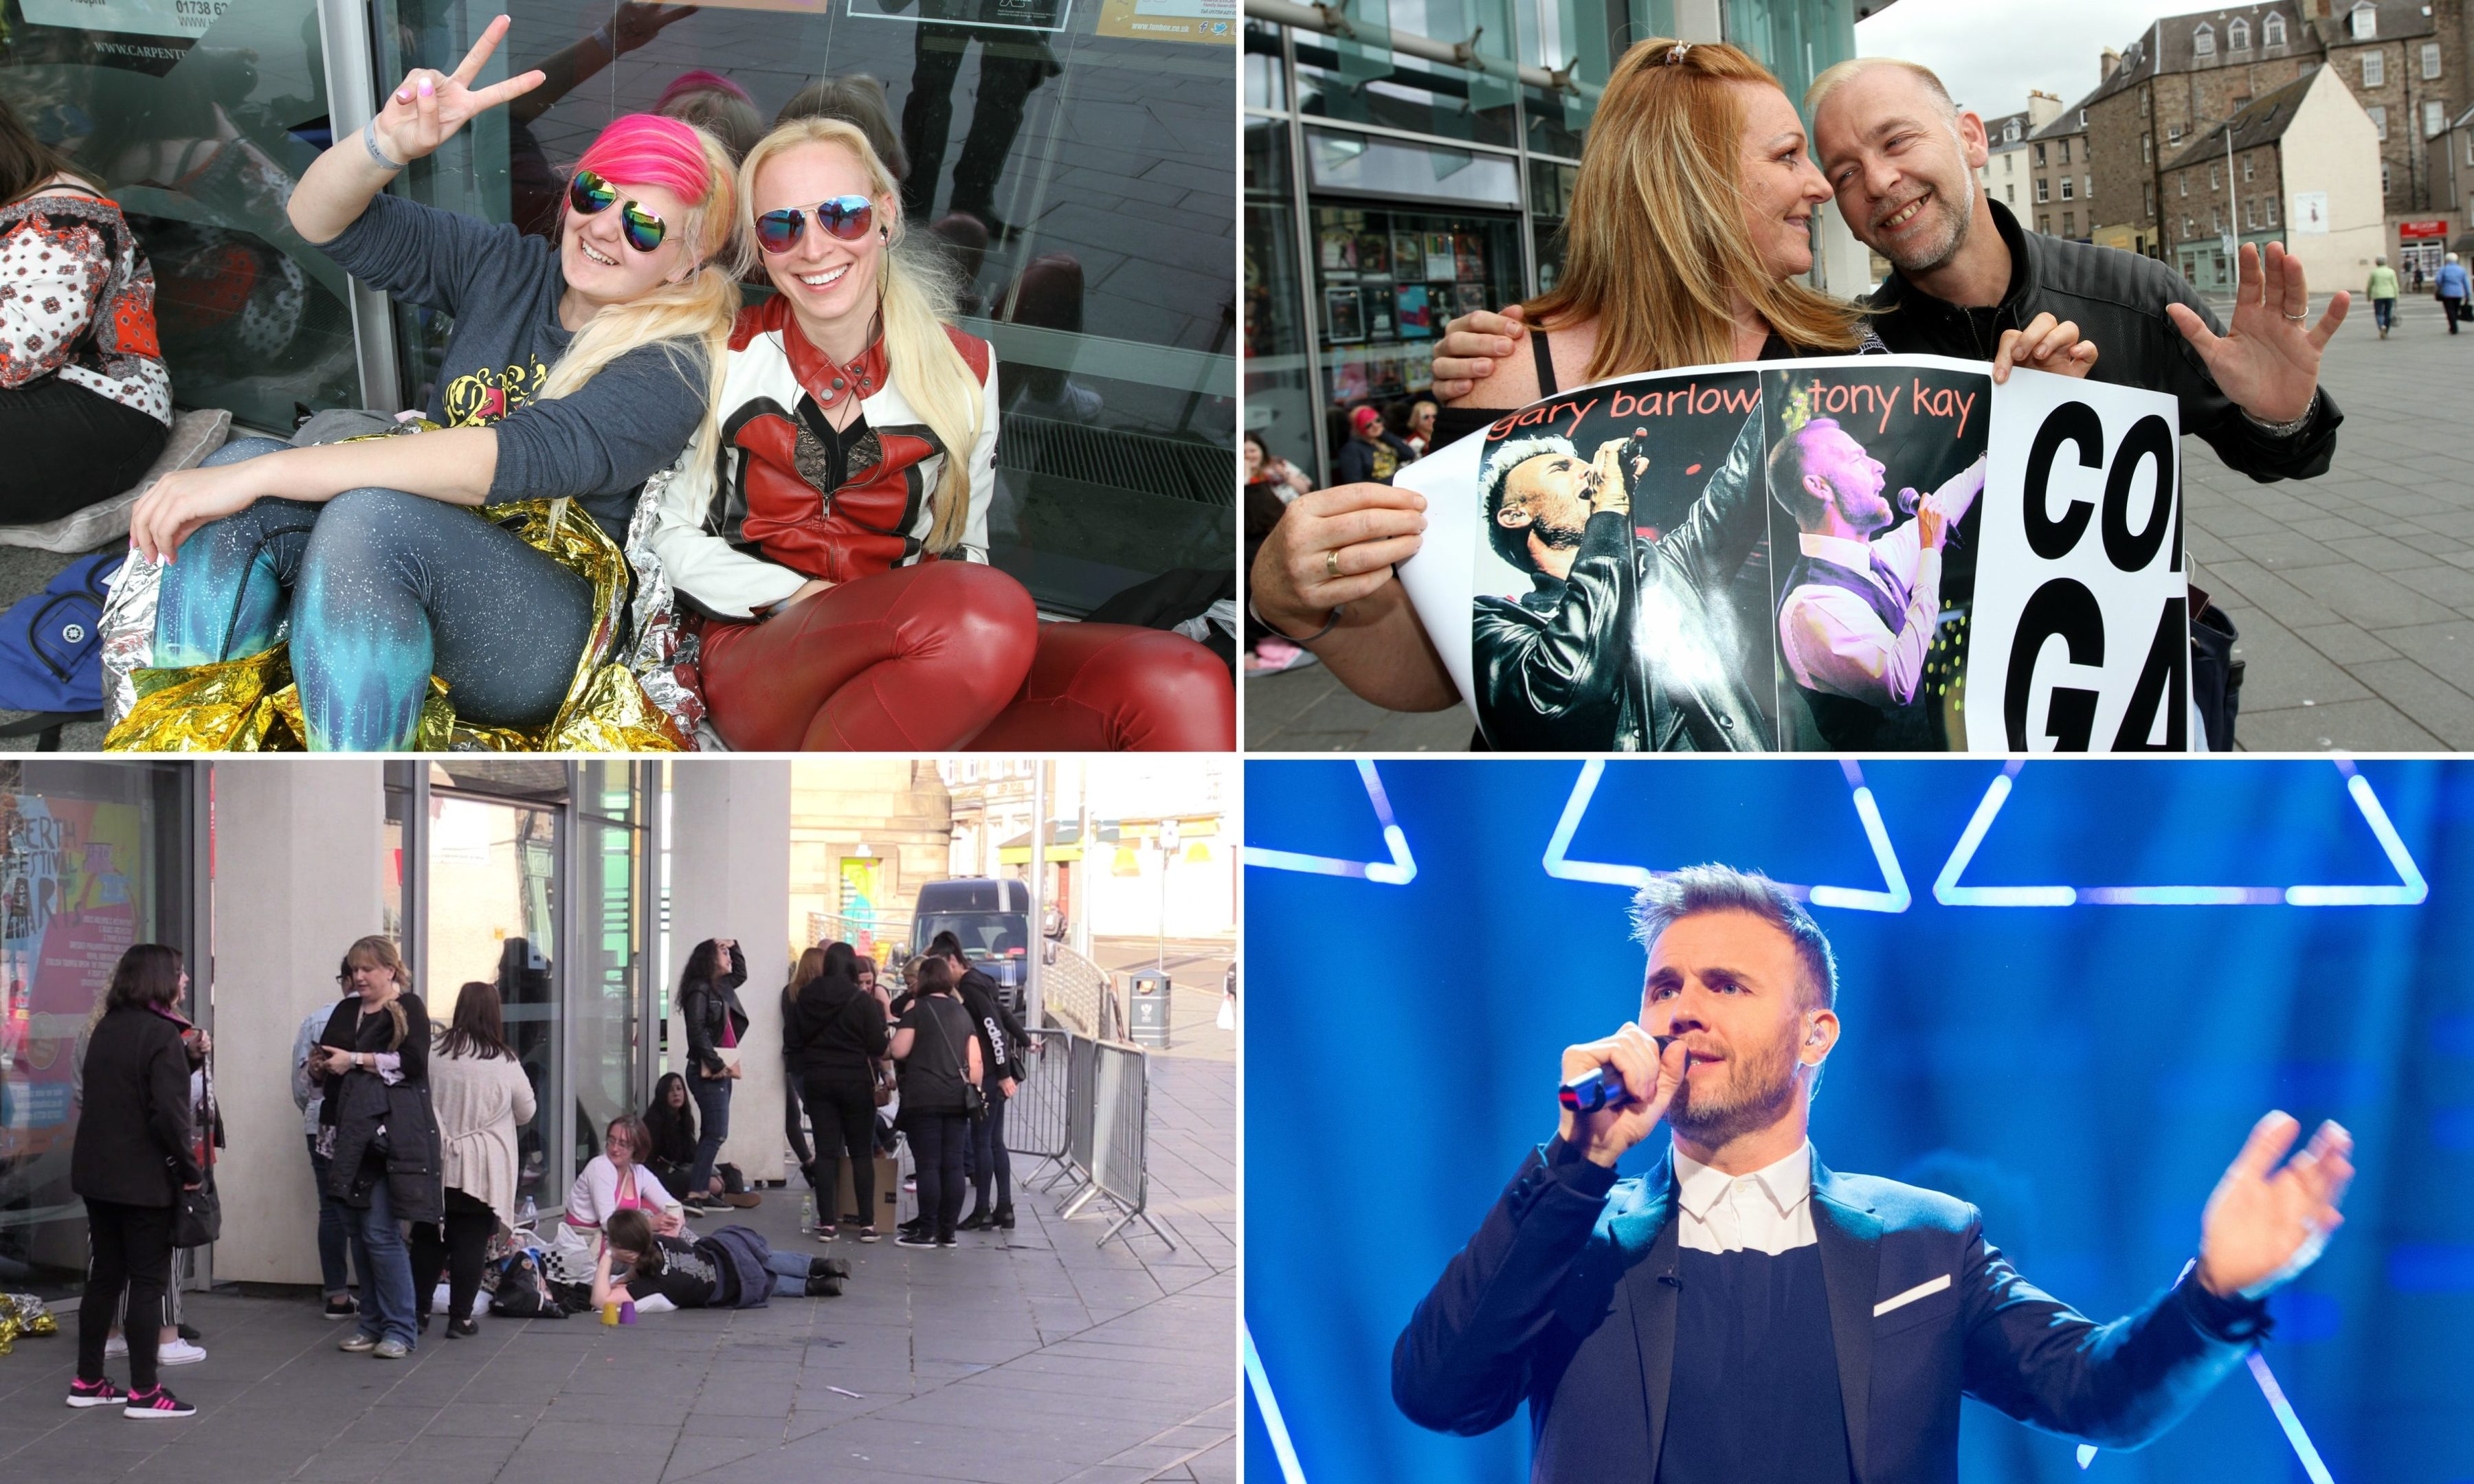 Fans waited outside Perth Concert Hall for more than a day to see Gary Barlow